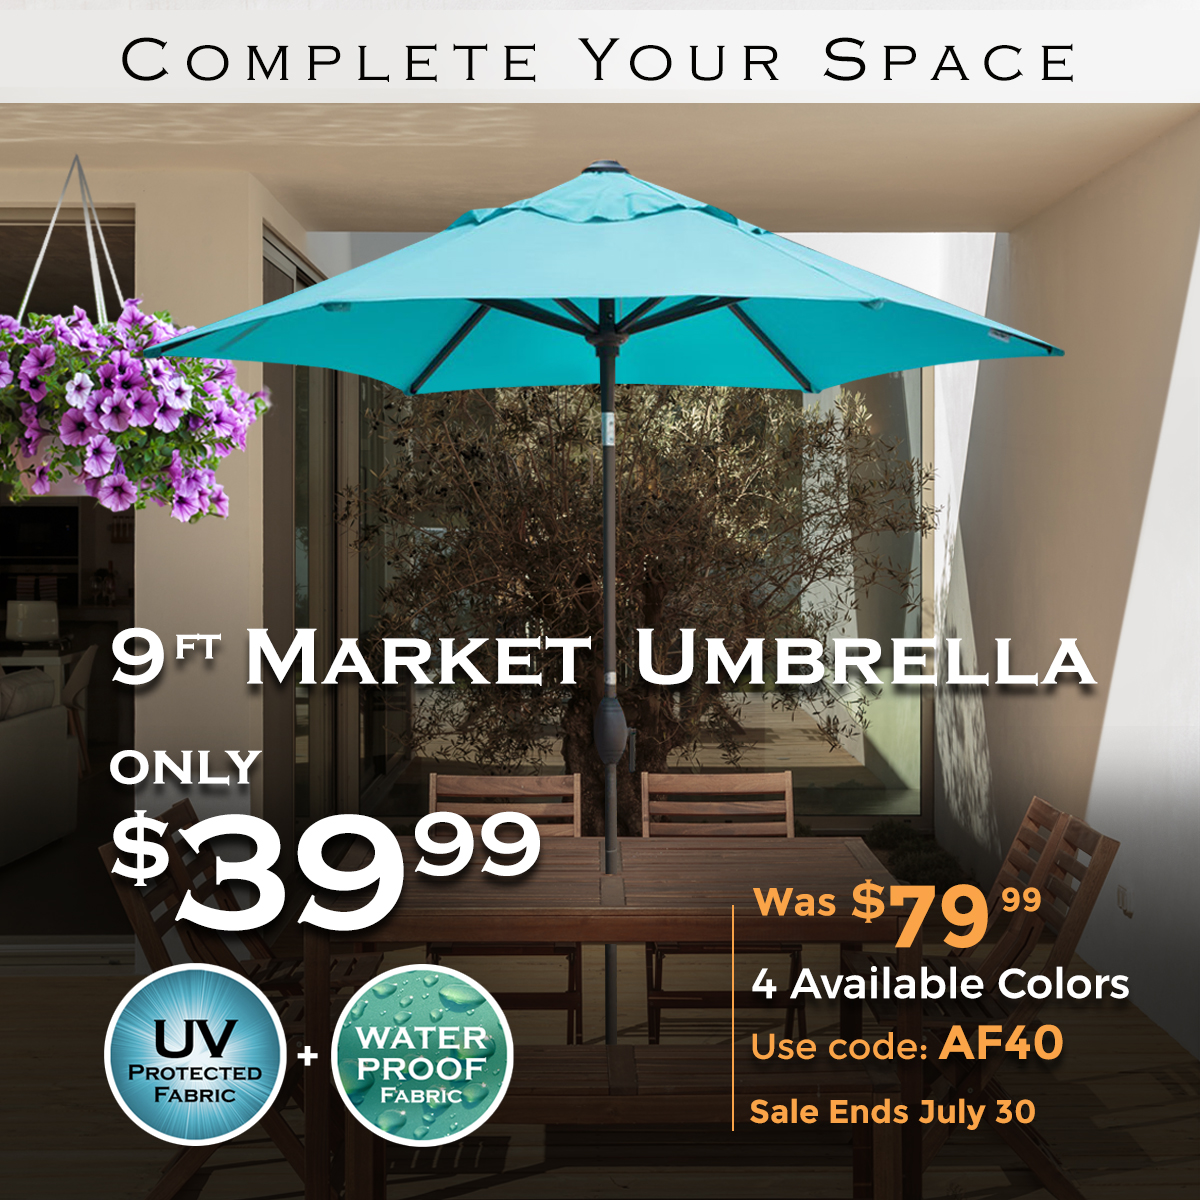 $40 Off! 9ft Market Umbrella Only $39.99 Now! Use Code AF40. Ends 7/30/2019.